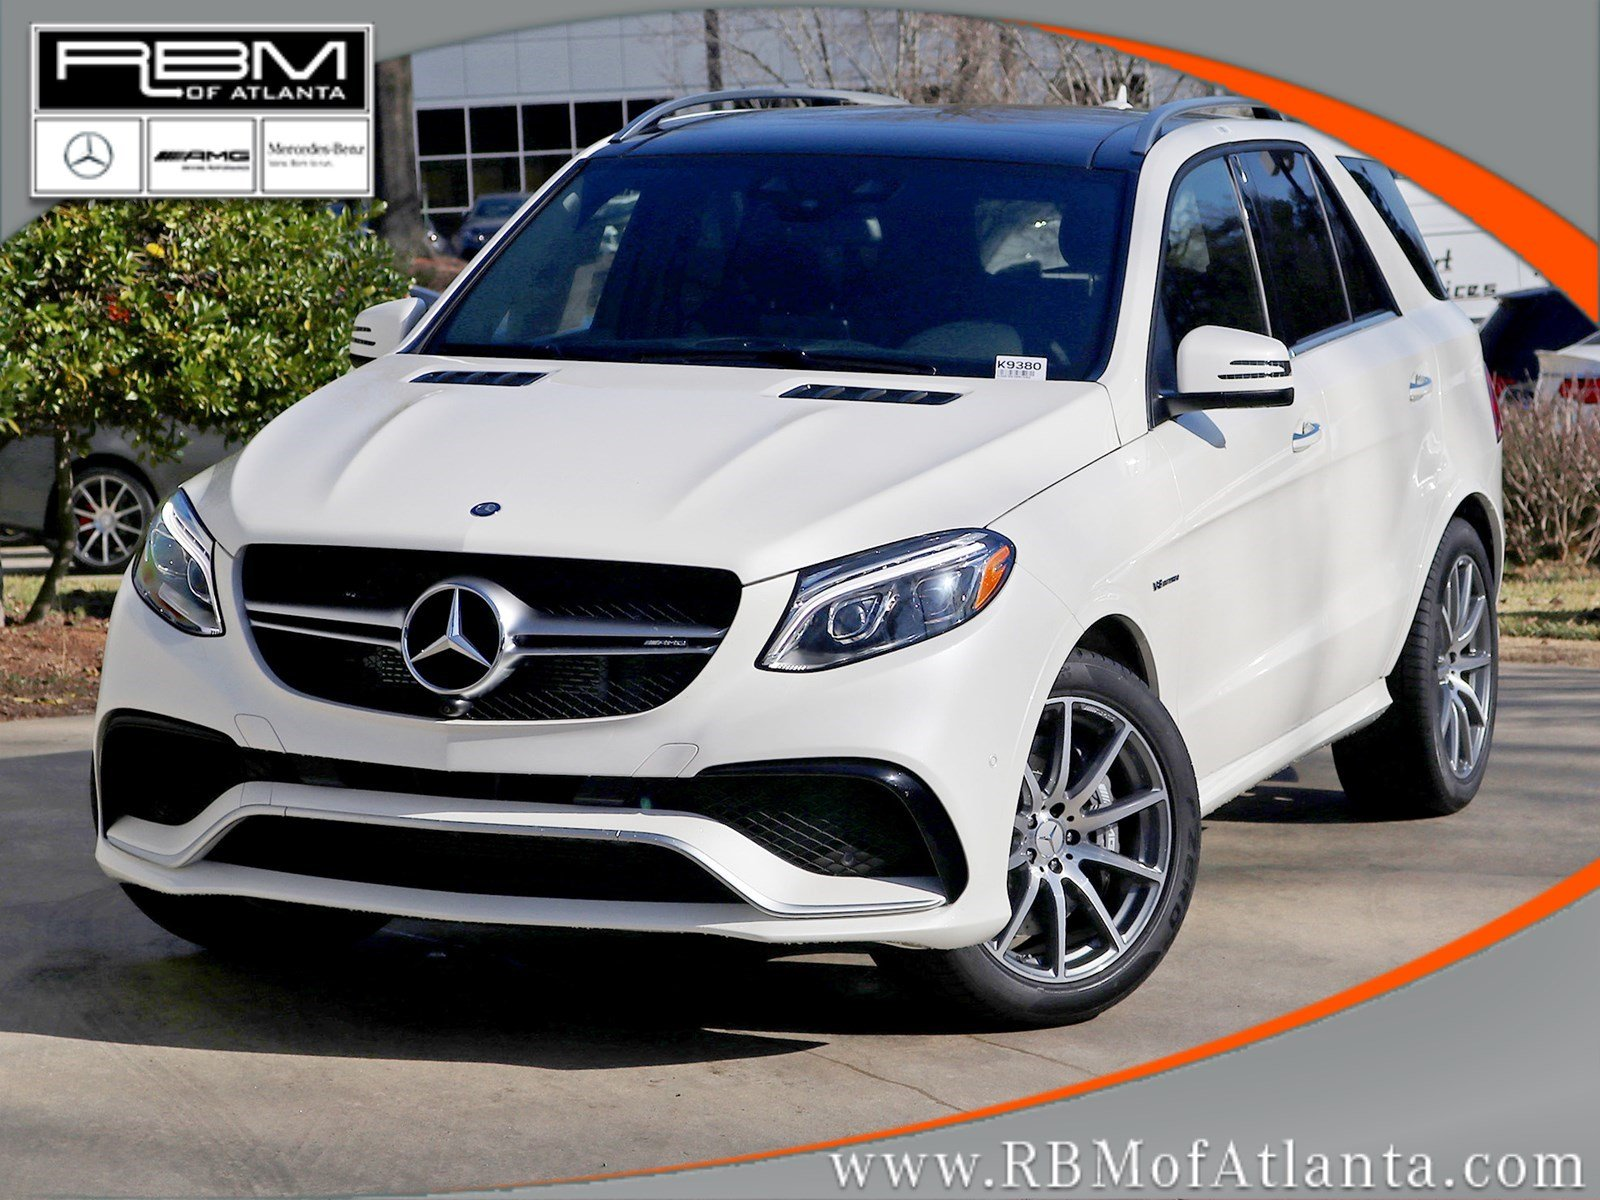 New 2017 mercedes benz gle gle 63 amg suv suv in atlanta for 2017 amg gle 63 mercedes benz